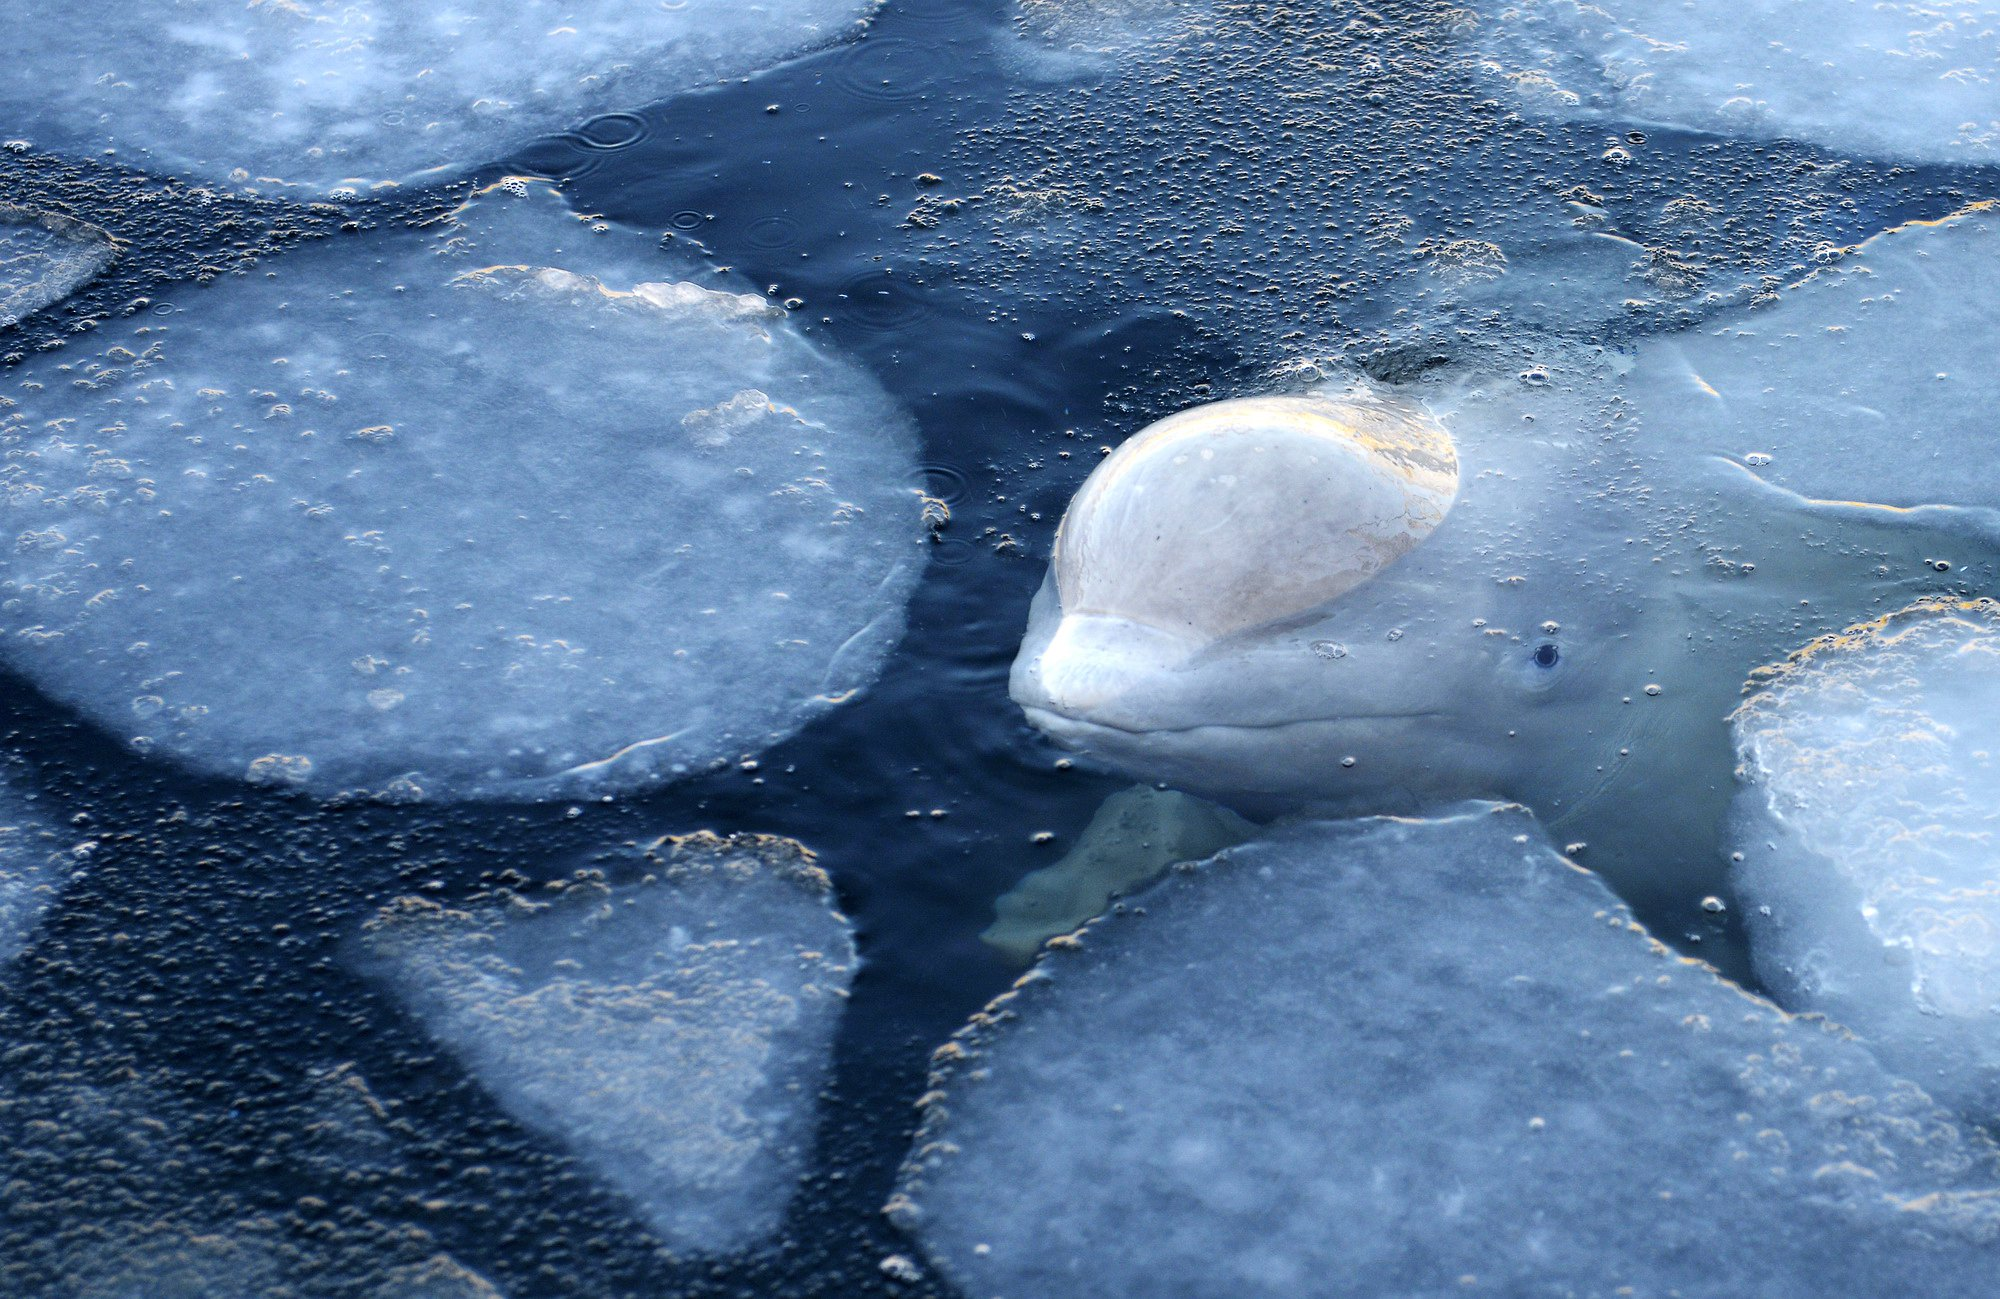 """In this handout photo taken on Friday, Jan. 18, 2019 and released by Free Russian Whales, a whale is seen in the marine containment facility in Srednyaya Bay near Vladivostok, which has been investigated by Russian prosecutors who have already called the capture illegal. Animal rights activists are expressing alarm about more than 100 whales that are being kept in small, crowded pools in what environmentalists are calling a """"whale prison,"""" off the coast of the Russian Far East. (Free Russian Whales via AP)"""